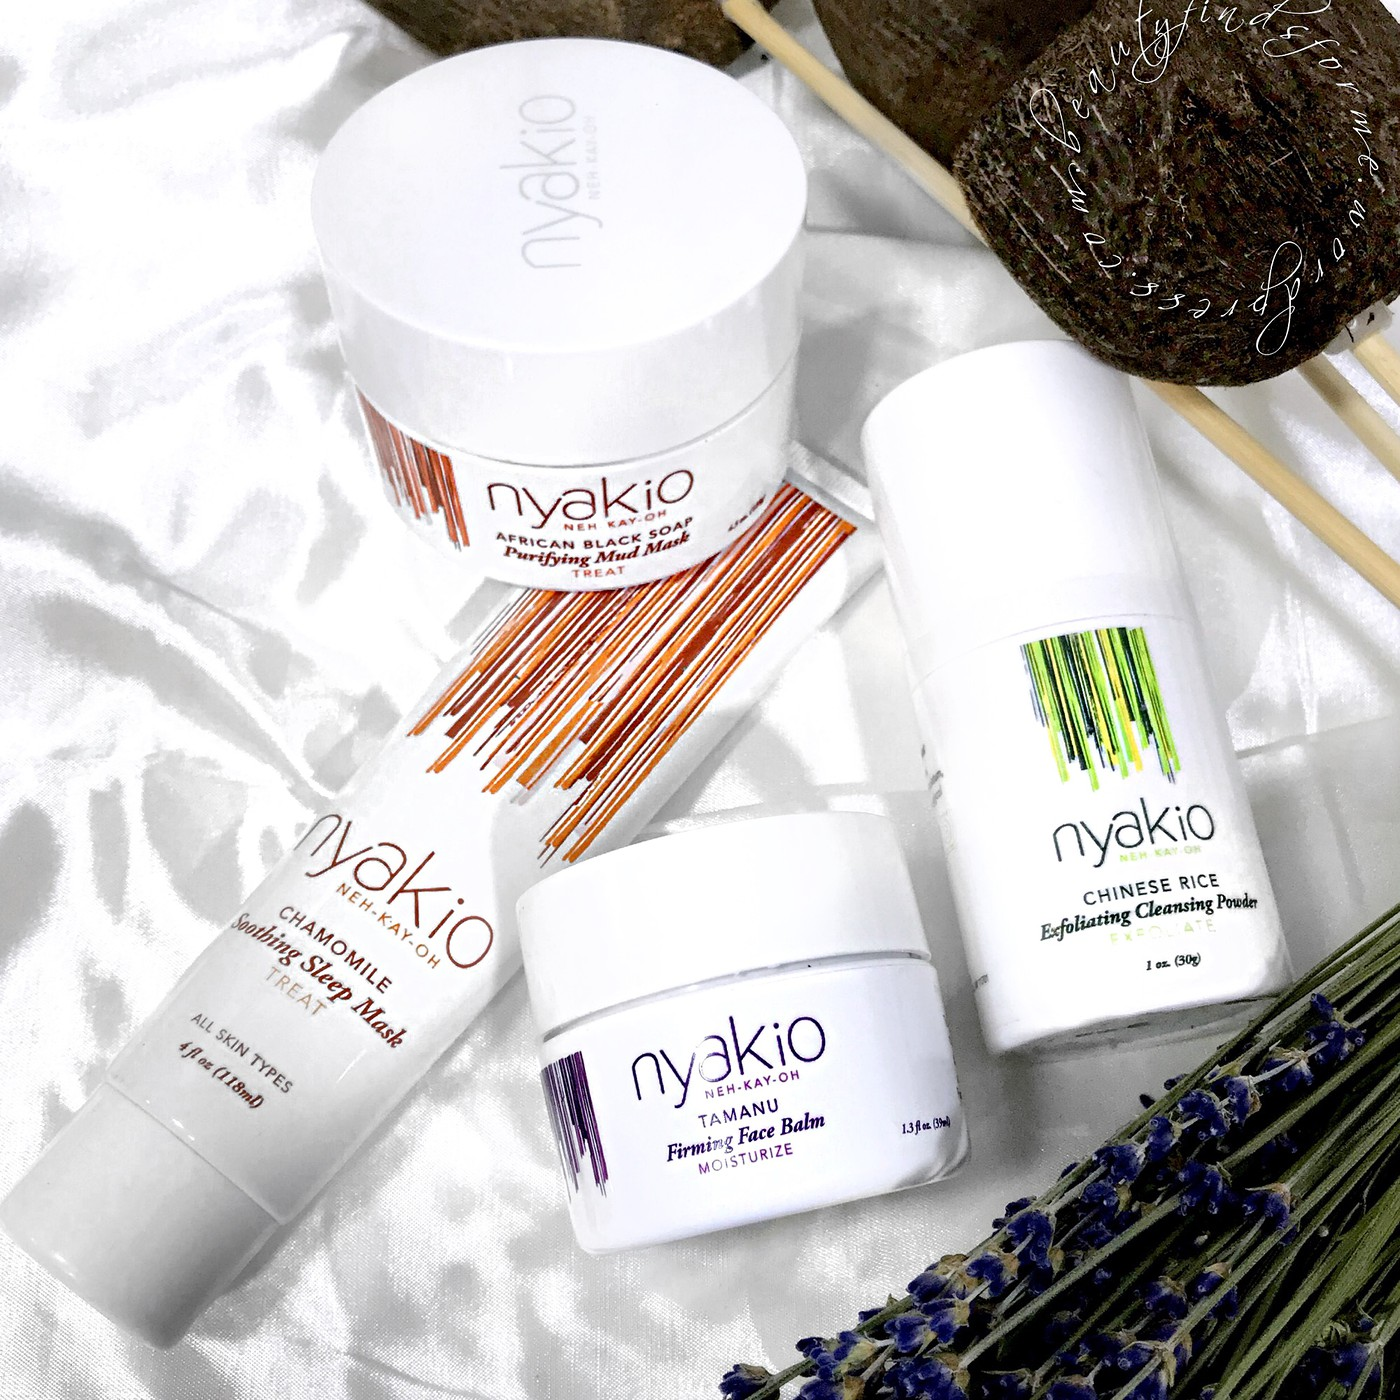 Nyakio: Natural, Multi-Cultural Skin Care For All Ages, Skin Types andBackgrounds